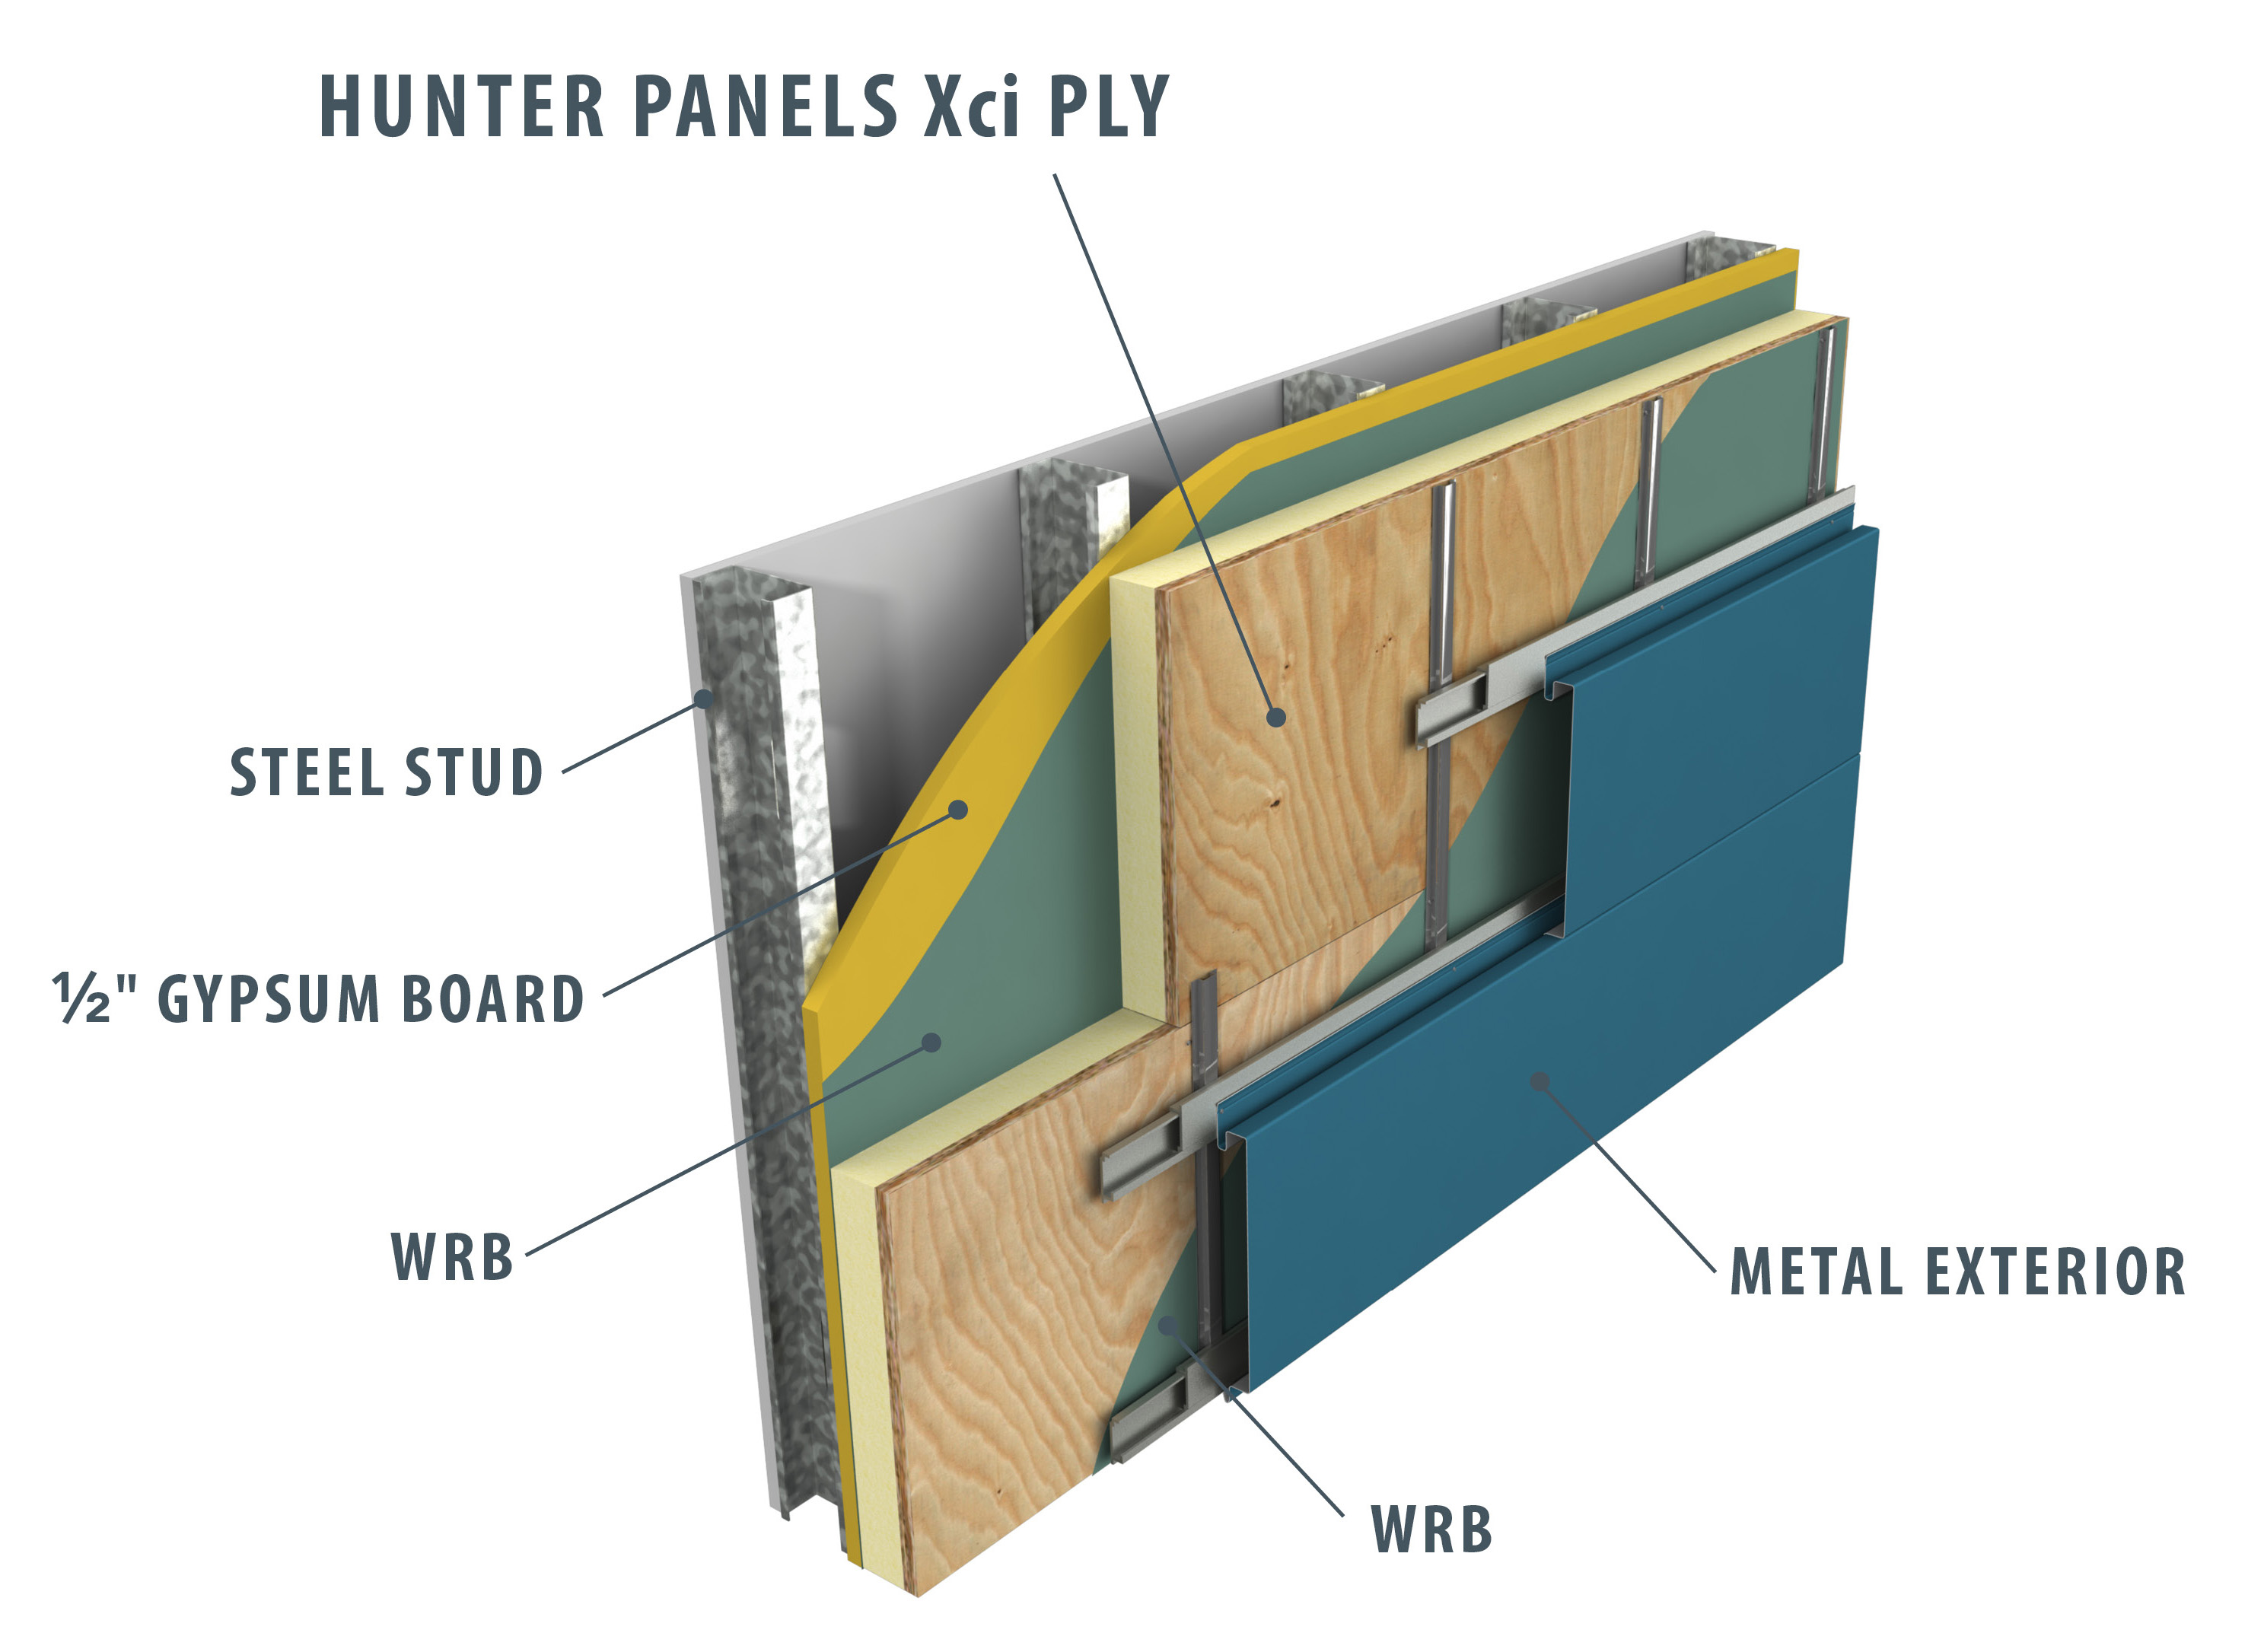 Aluminium Panel With Insulation : Hunter xci ply polyiso plywood faced wall panel gic